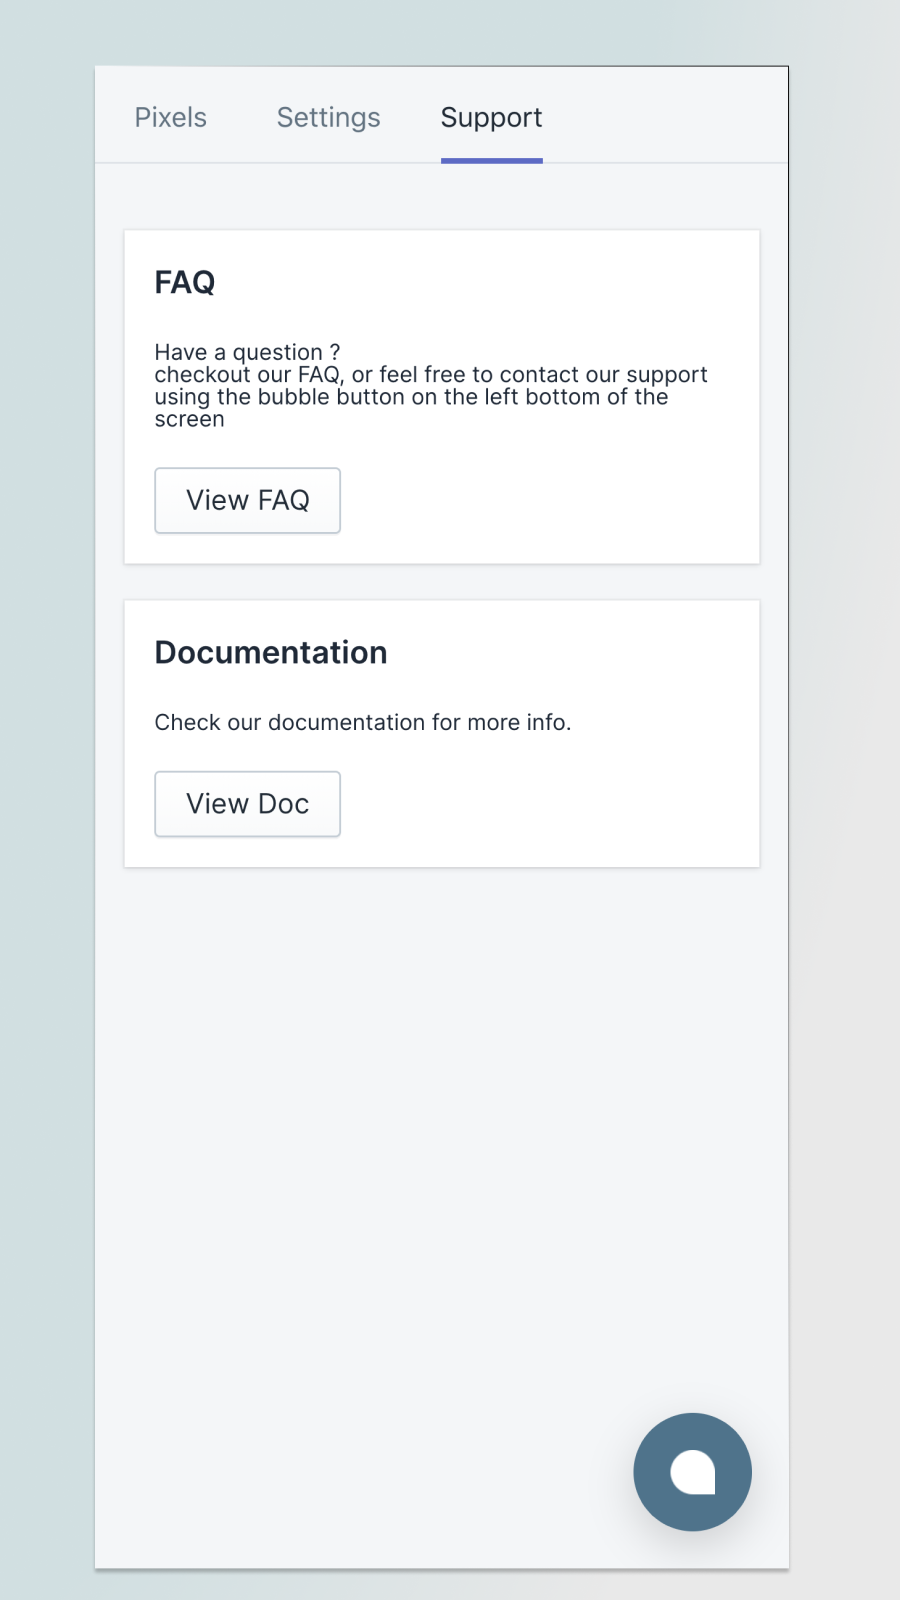 Easy access to documenation and support